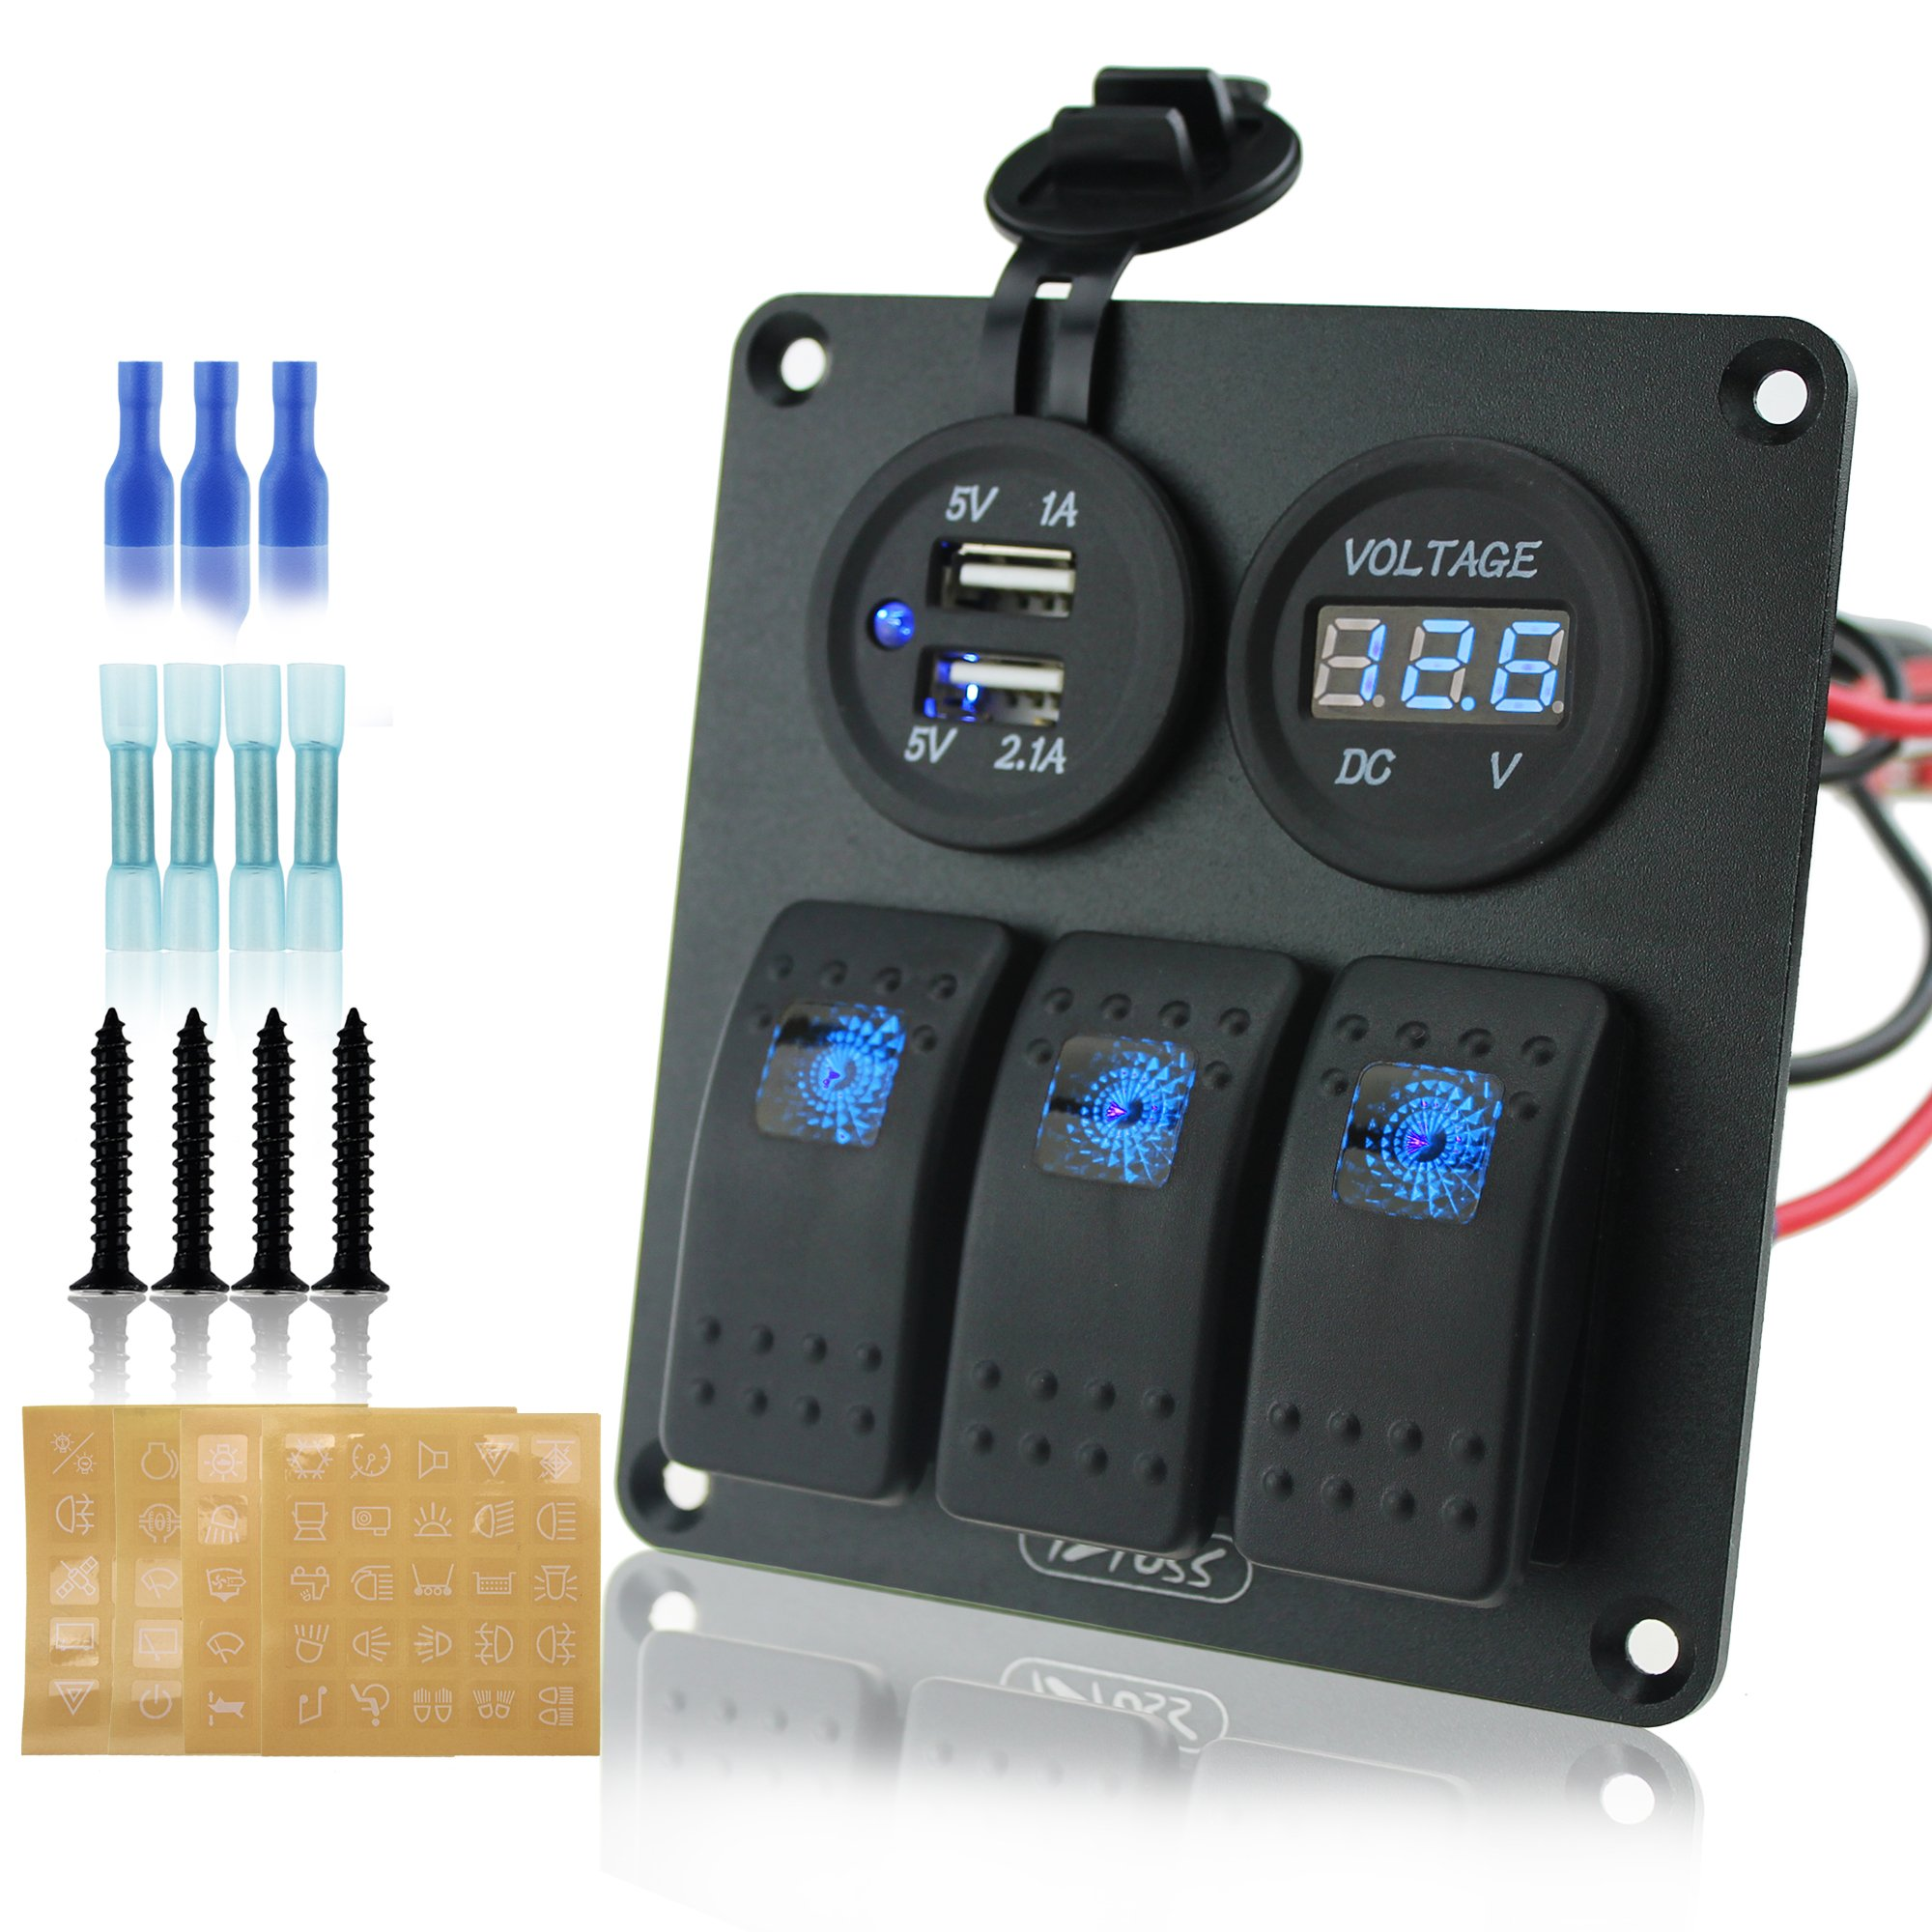 Ambuker 3 gang rocker switch panel with 3.1A dual USB wiring kits and voltmeter Decal Sticker Labels DC12V/24V for Marine Boat Car Rv Vehicles Truck by Ambuker